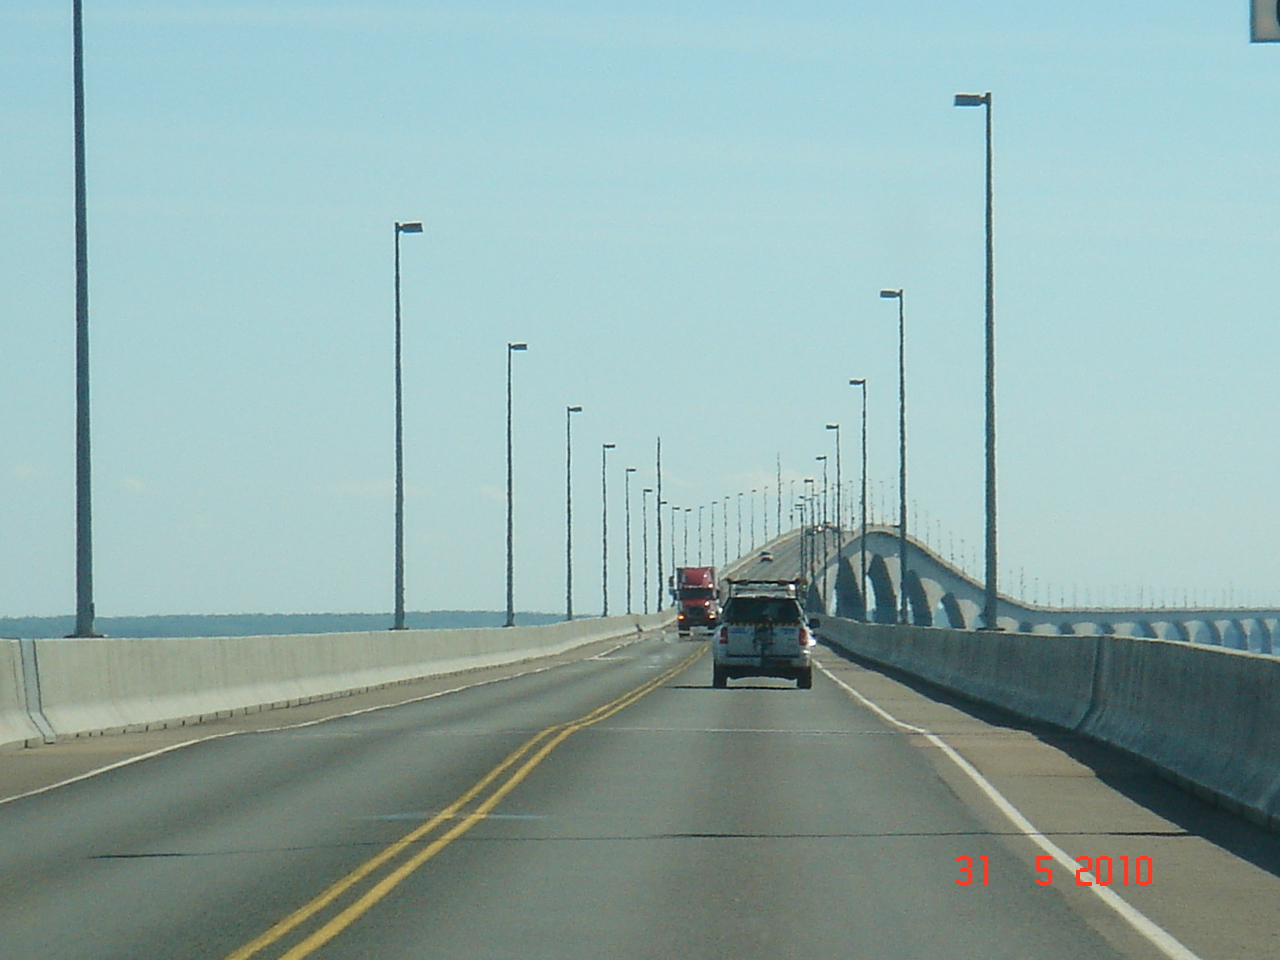 Longest Bridge In The World Over Water Of the bridge we stoppedLongest Bridge In The World Over Water